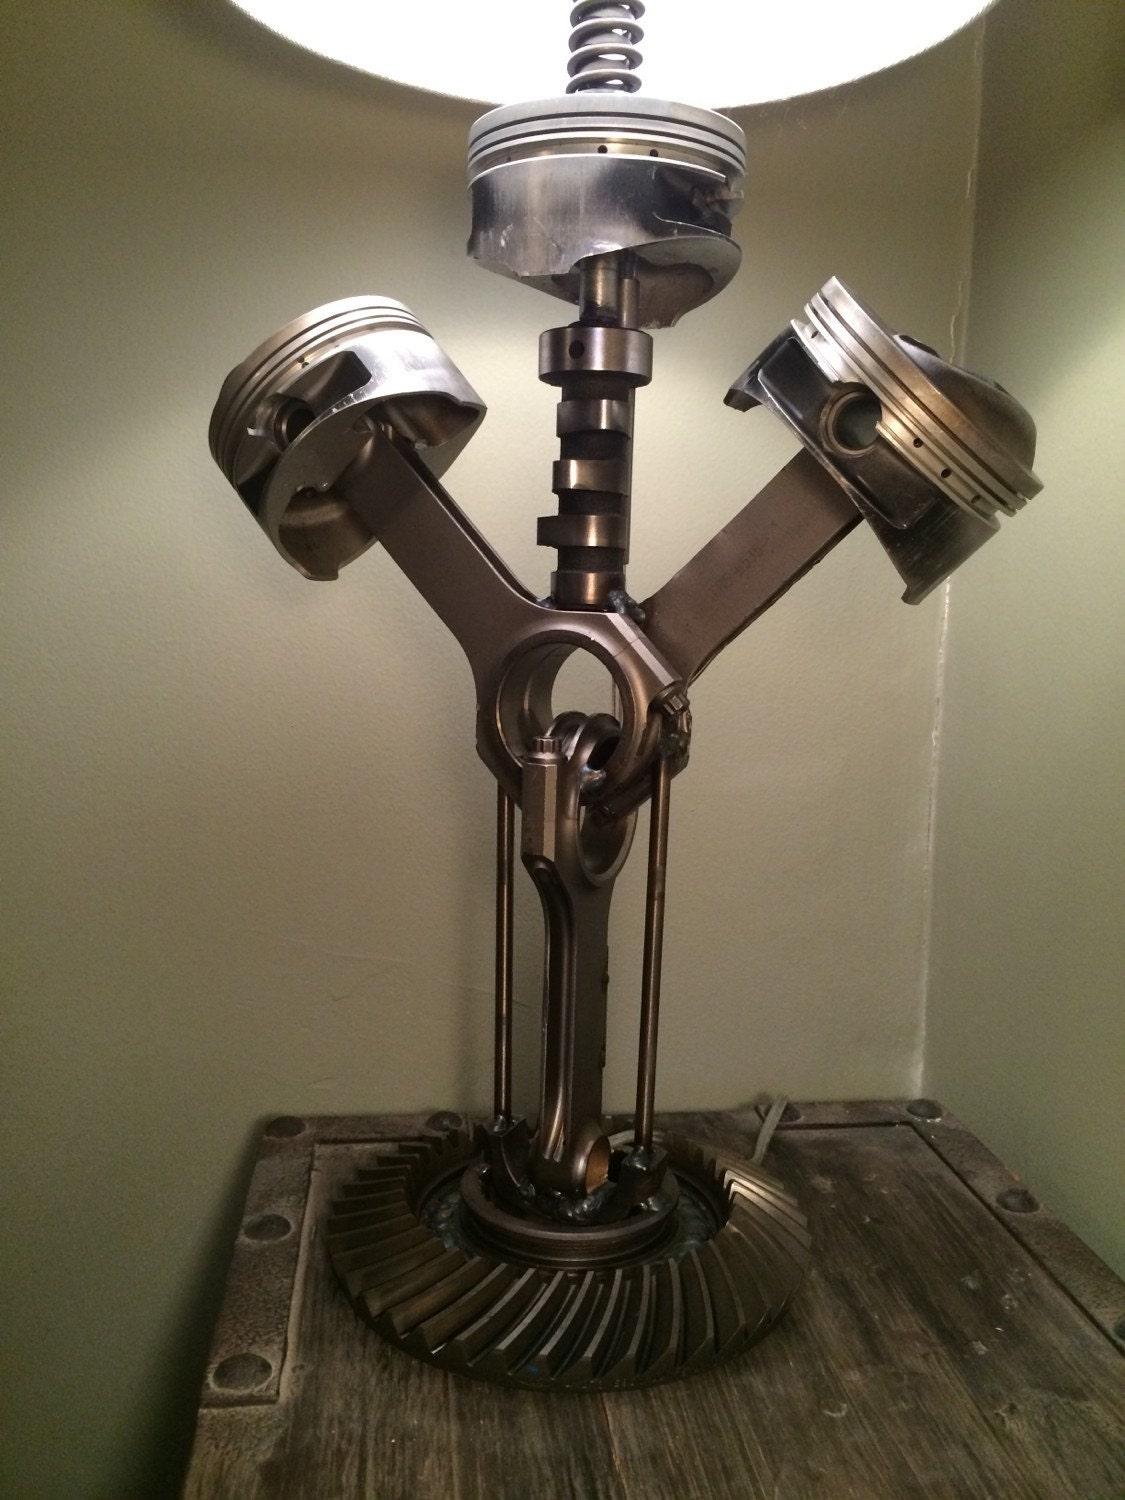 Hand crafted table lamp using repurposed engine car parts for Lampe deco interieur